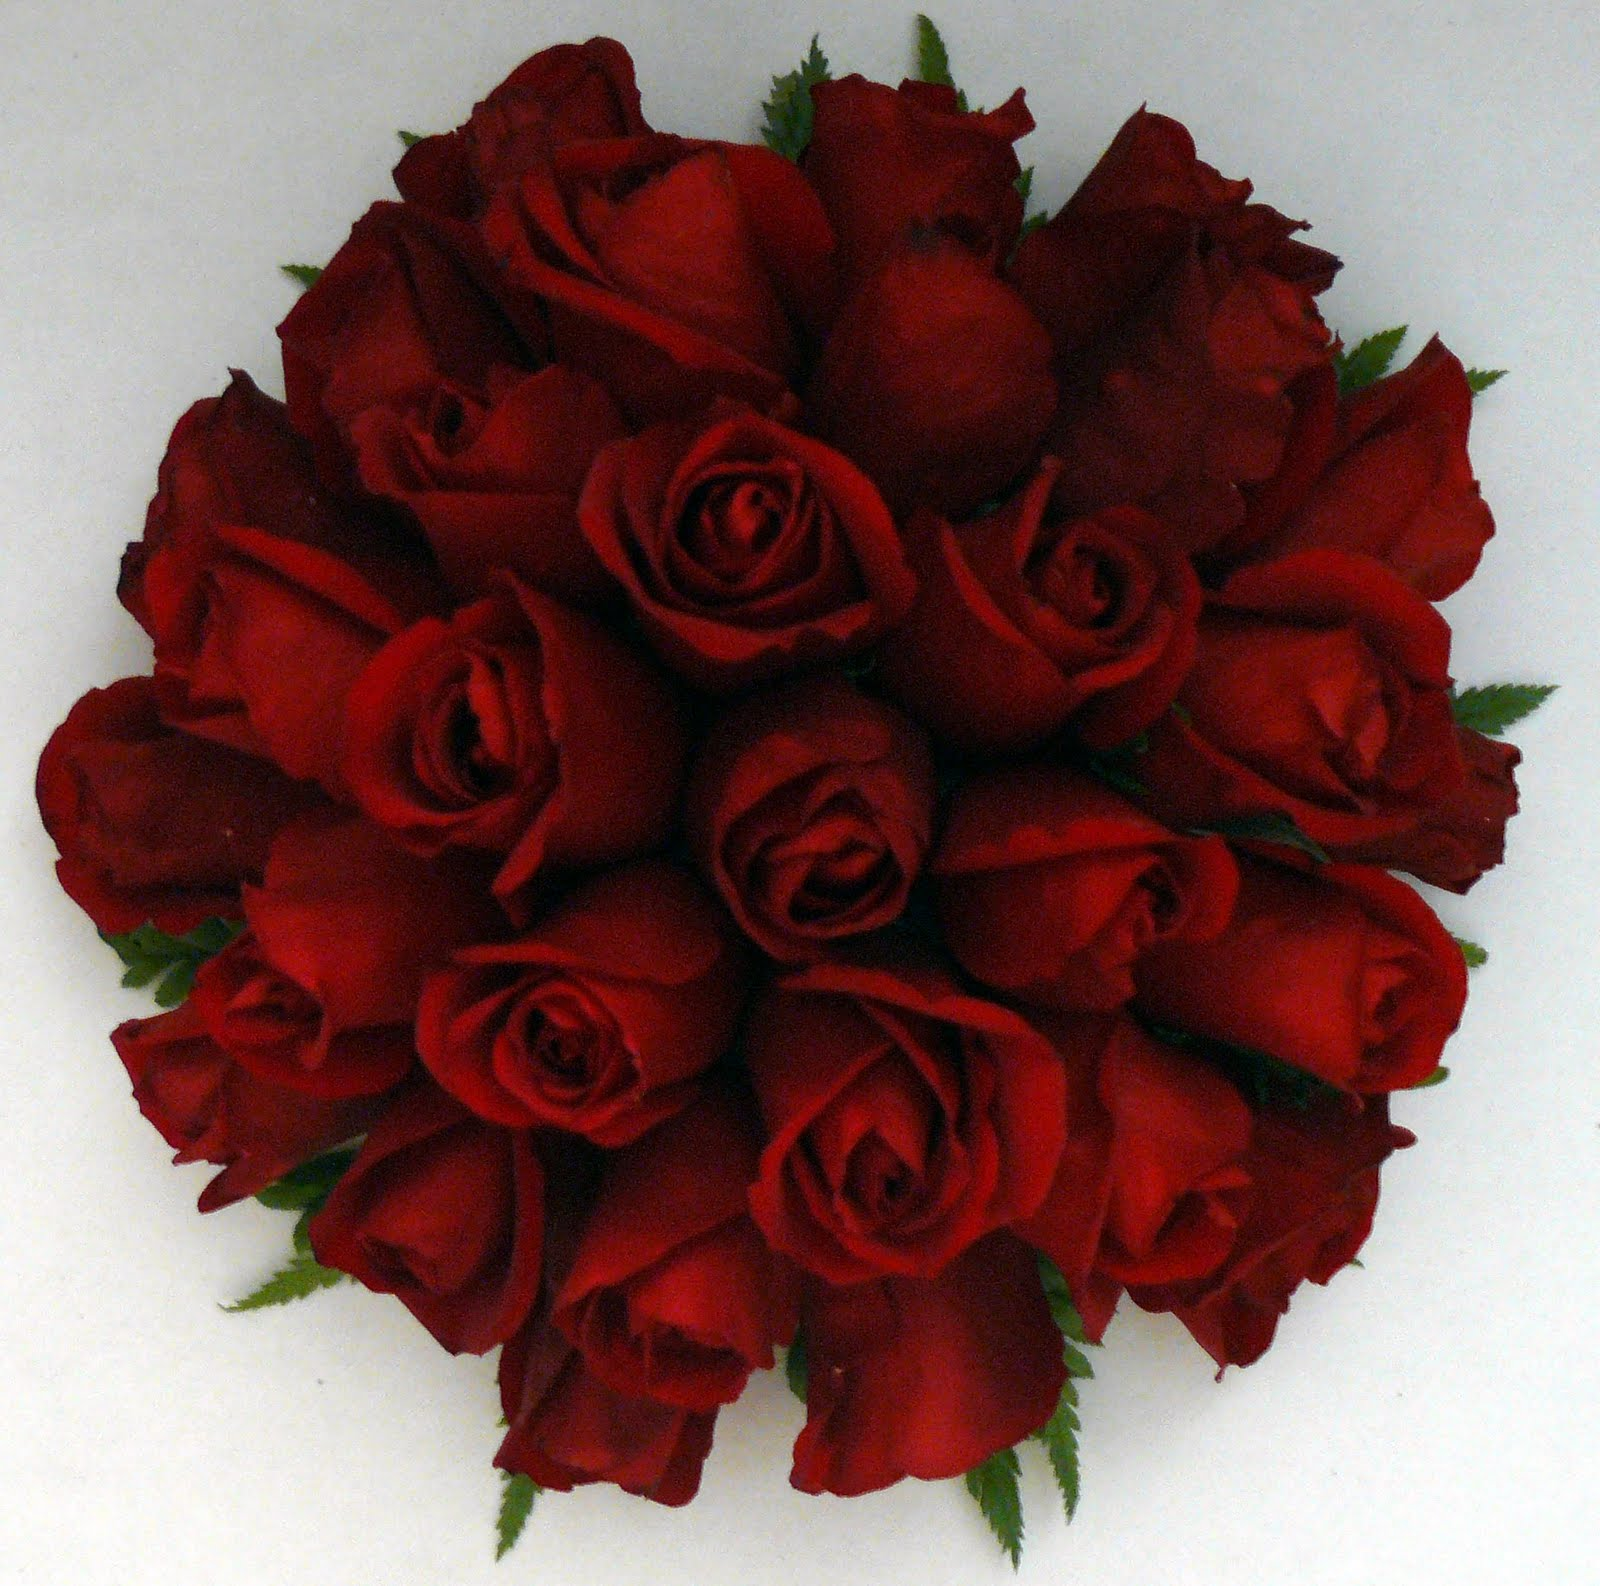 Red Rose Wedding Flowers: 1000+ Images About Red Rose Bridal Bouquets On Pinterest